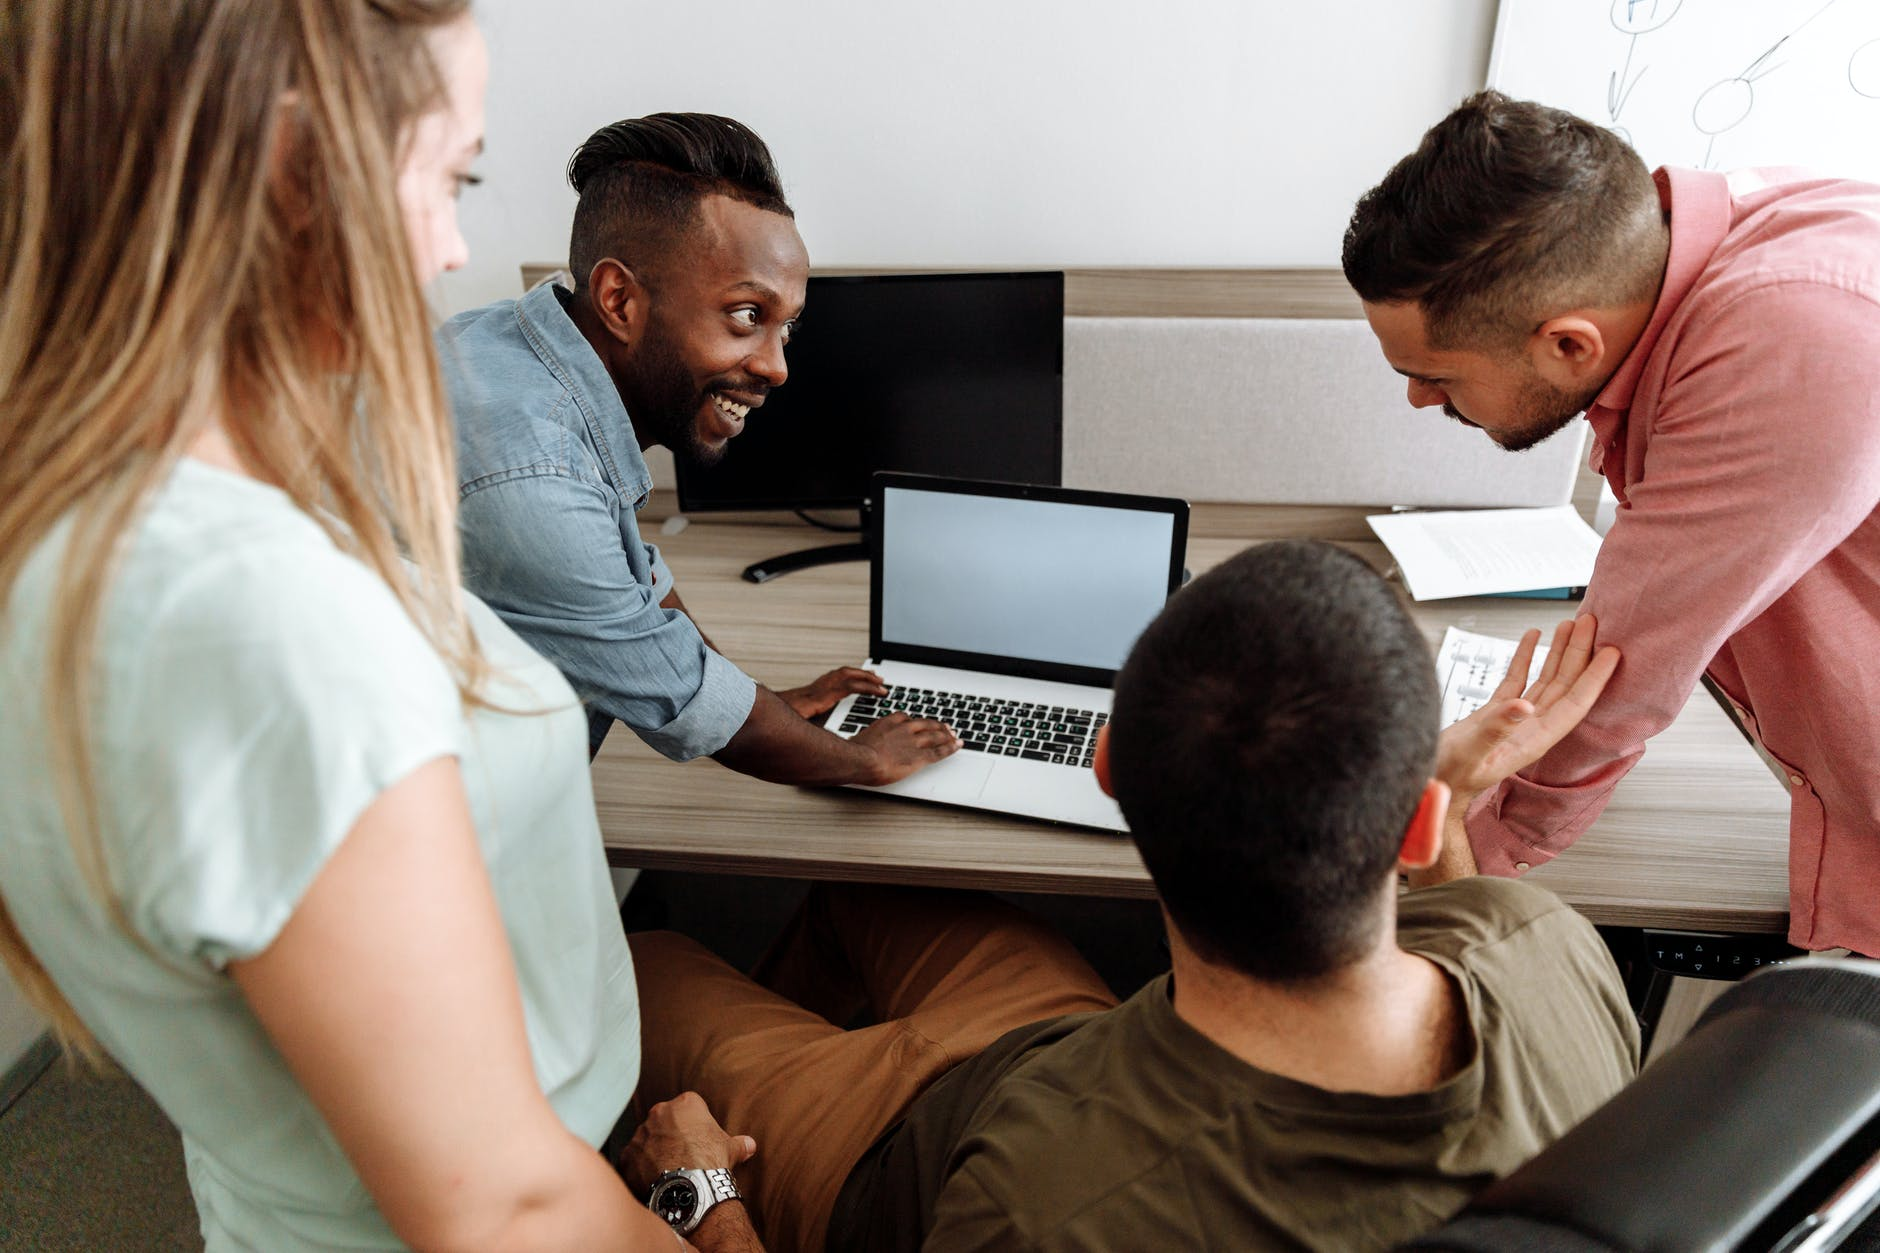 group of people having discussion at work